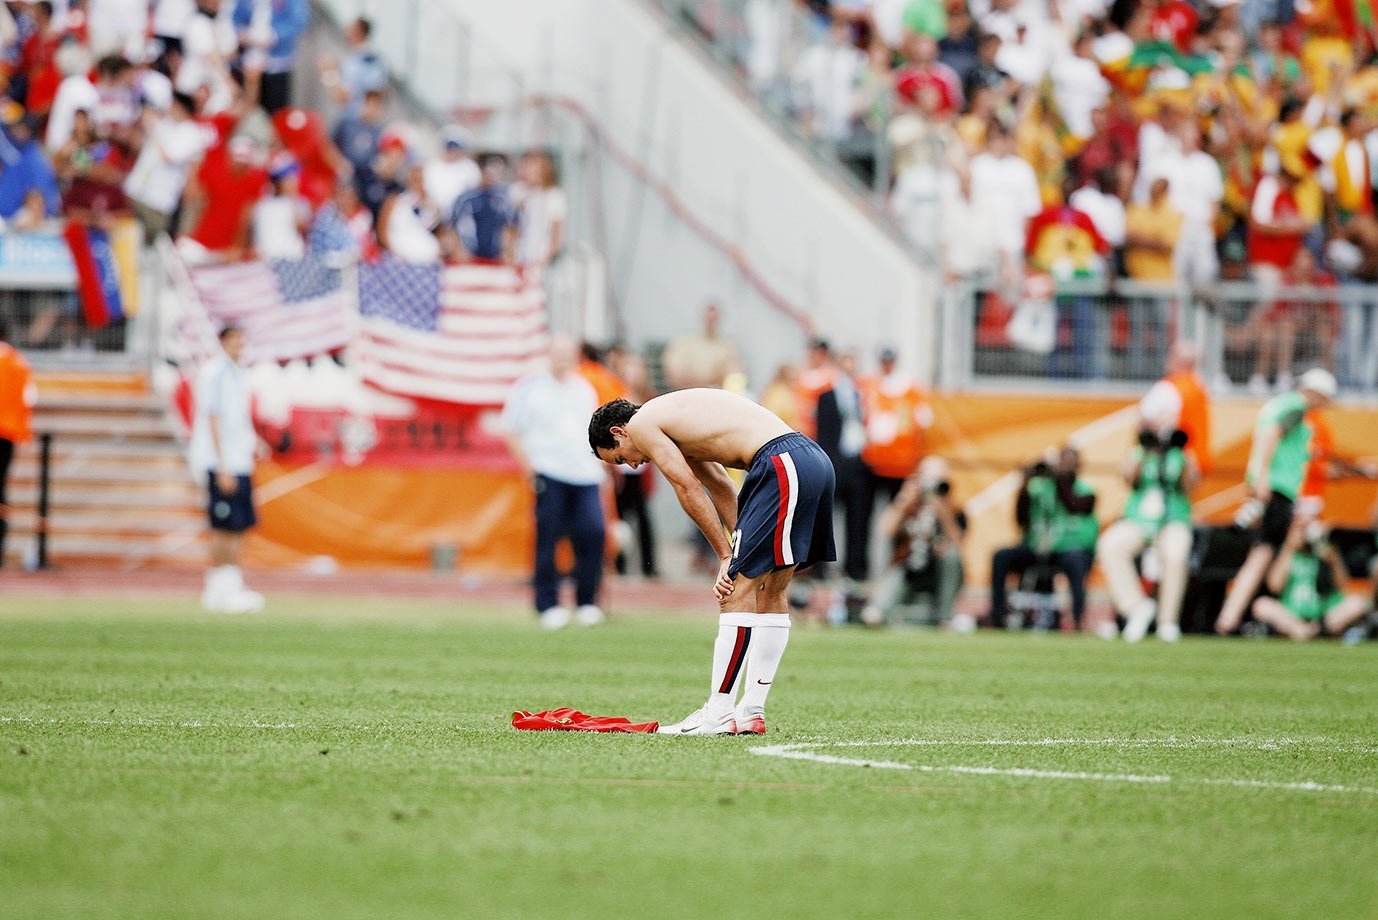 A disappointed Landon Donovan after the U.S. was eliminated from the 2006 World Cup after its third game.